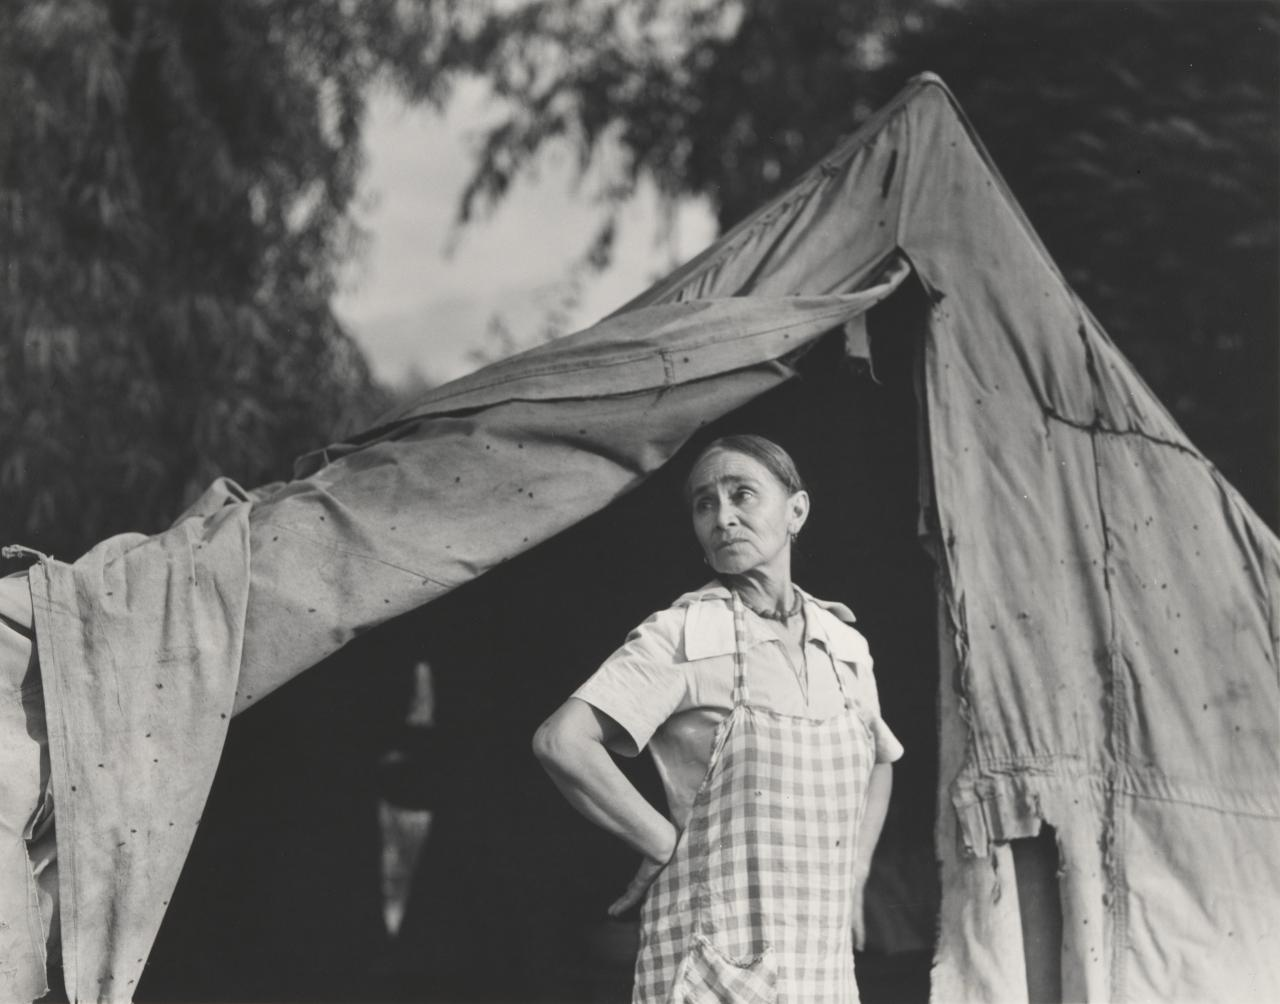 Greek migratory woman living in cotton camp, Exeter, California